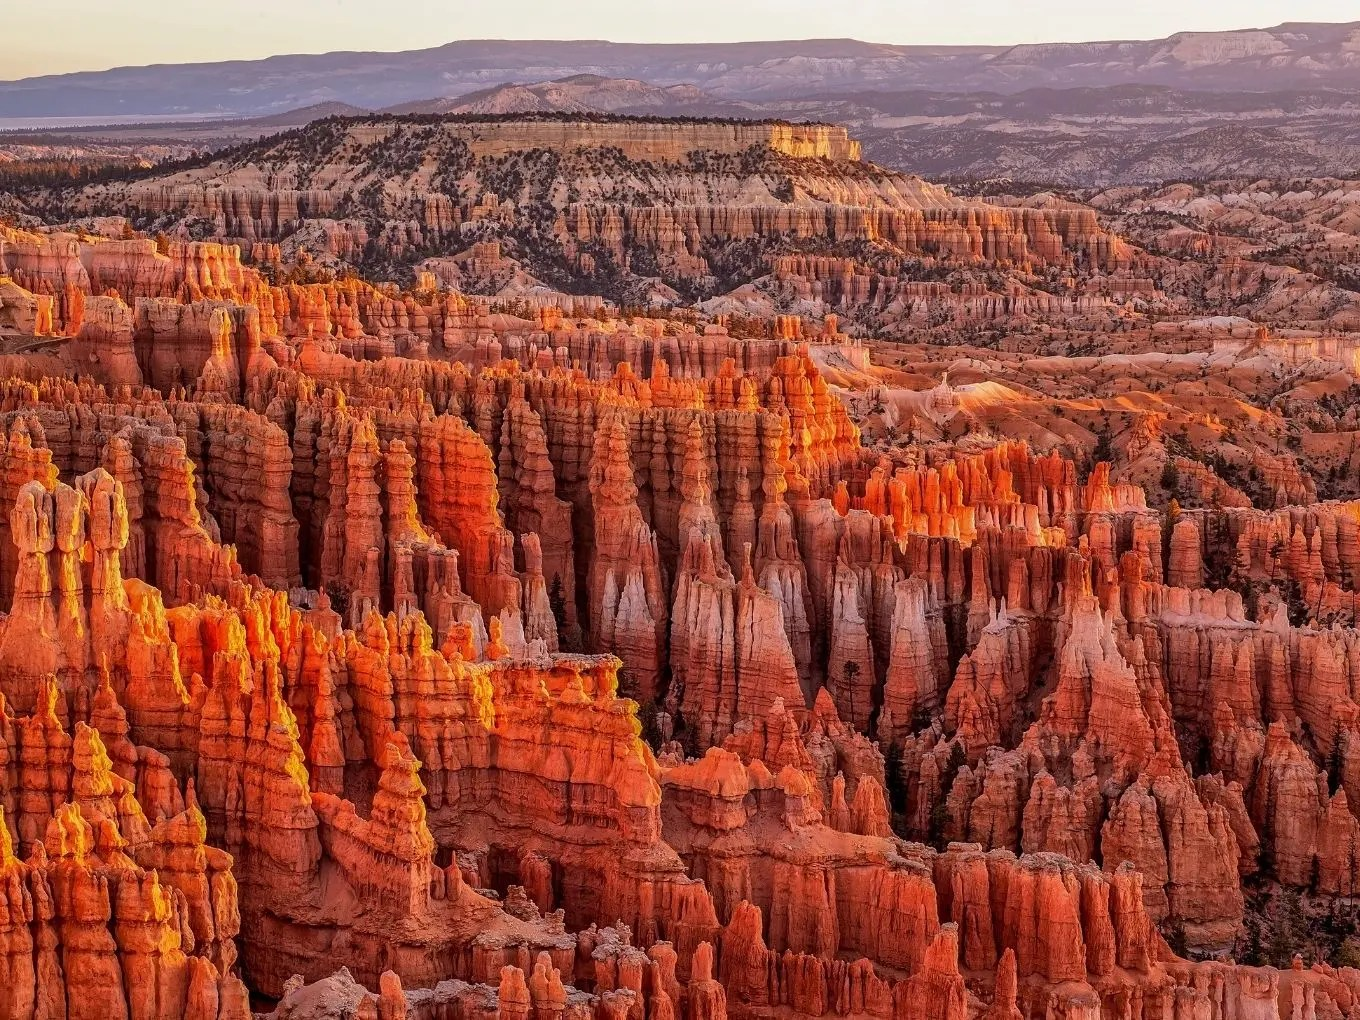 Getting to Bryce Canyon National Park